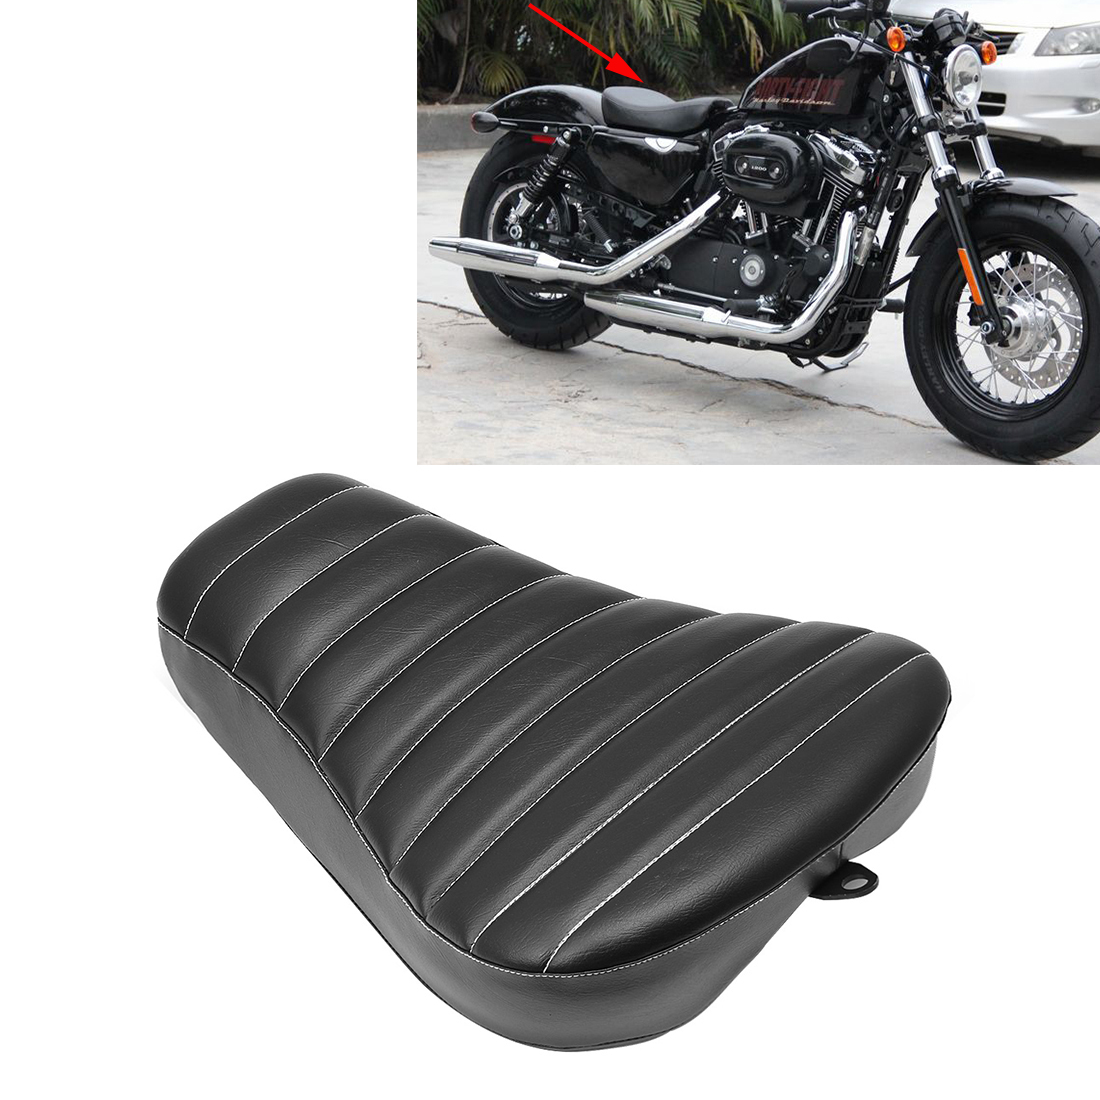 1~20PCS Motorcycle Seat Leather Pad For Harley Sportster XL883 XL1200 04-15